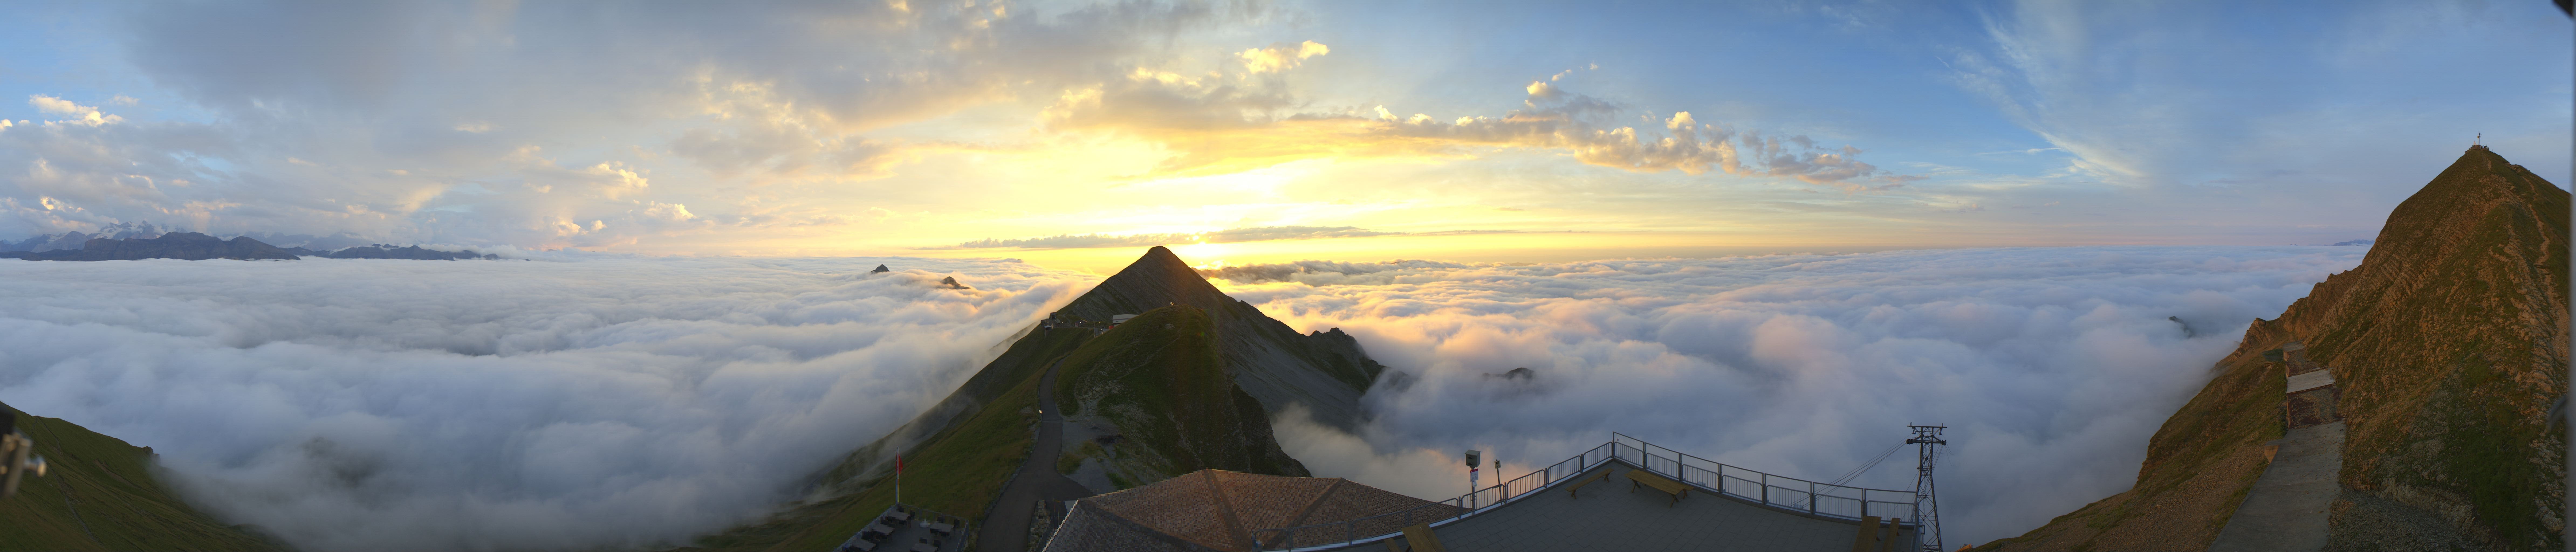 Giswil: Brienzer Rothorn